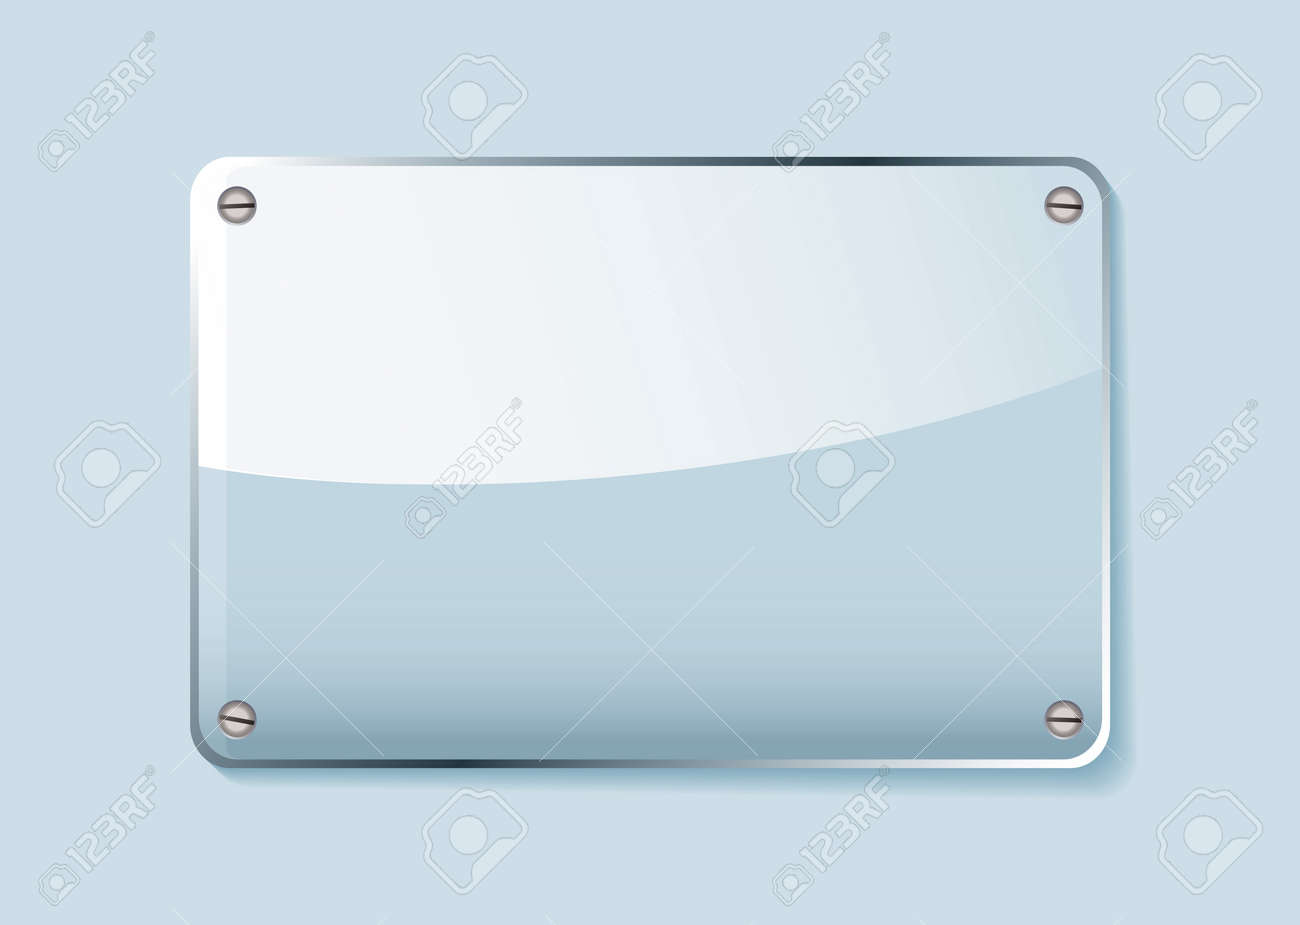 Transparent clear glass company name plate with room for text - 9751476